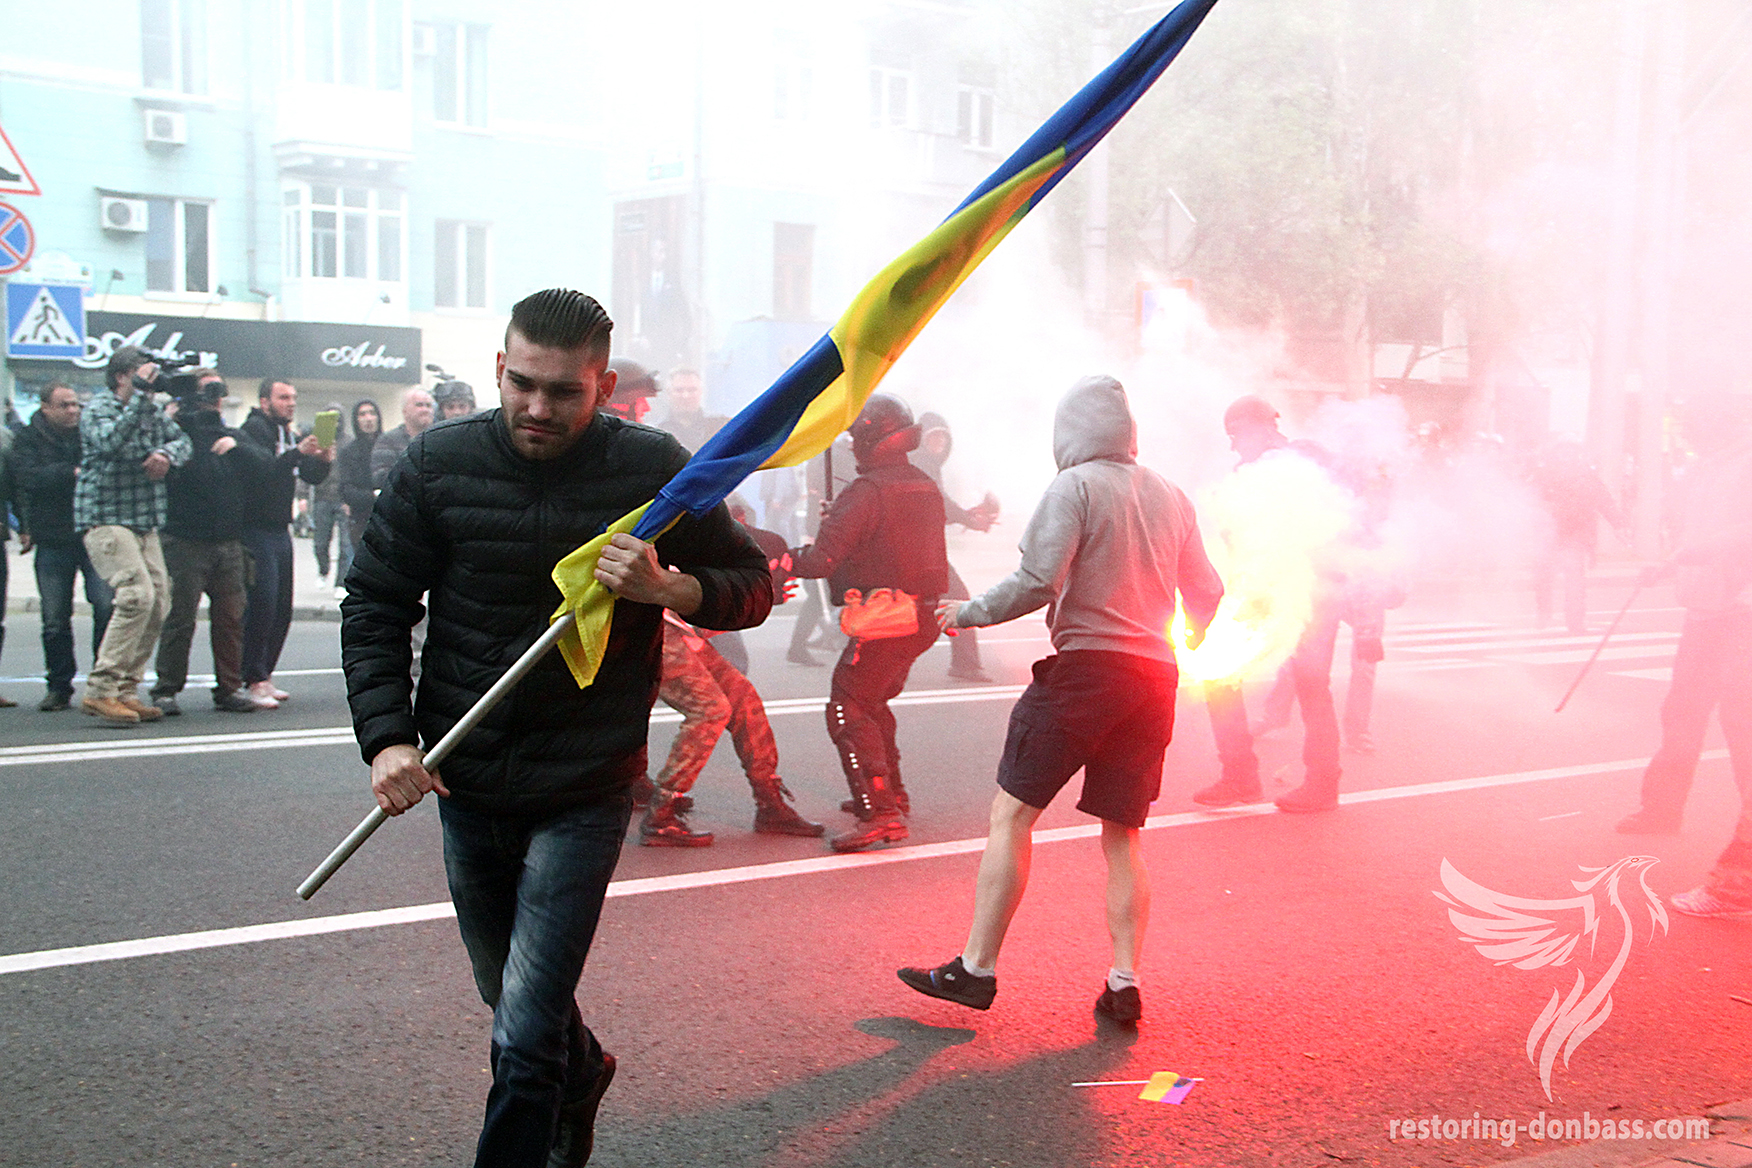 Clashes at a rally for unity, April 28, 2014